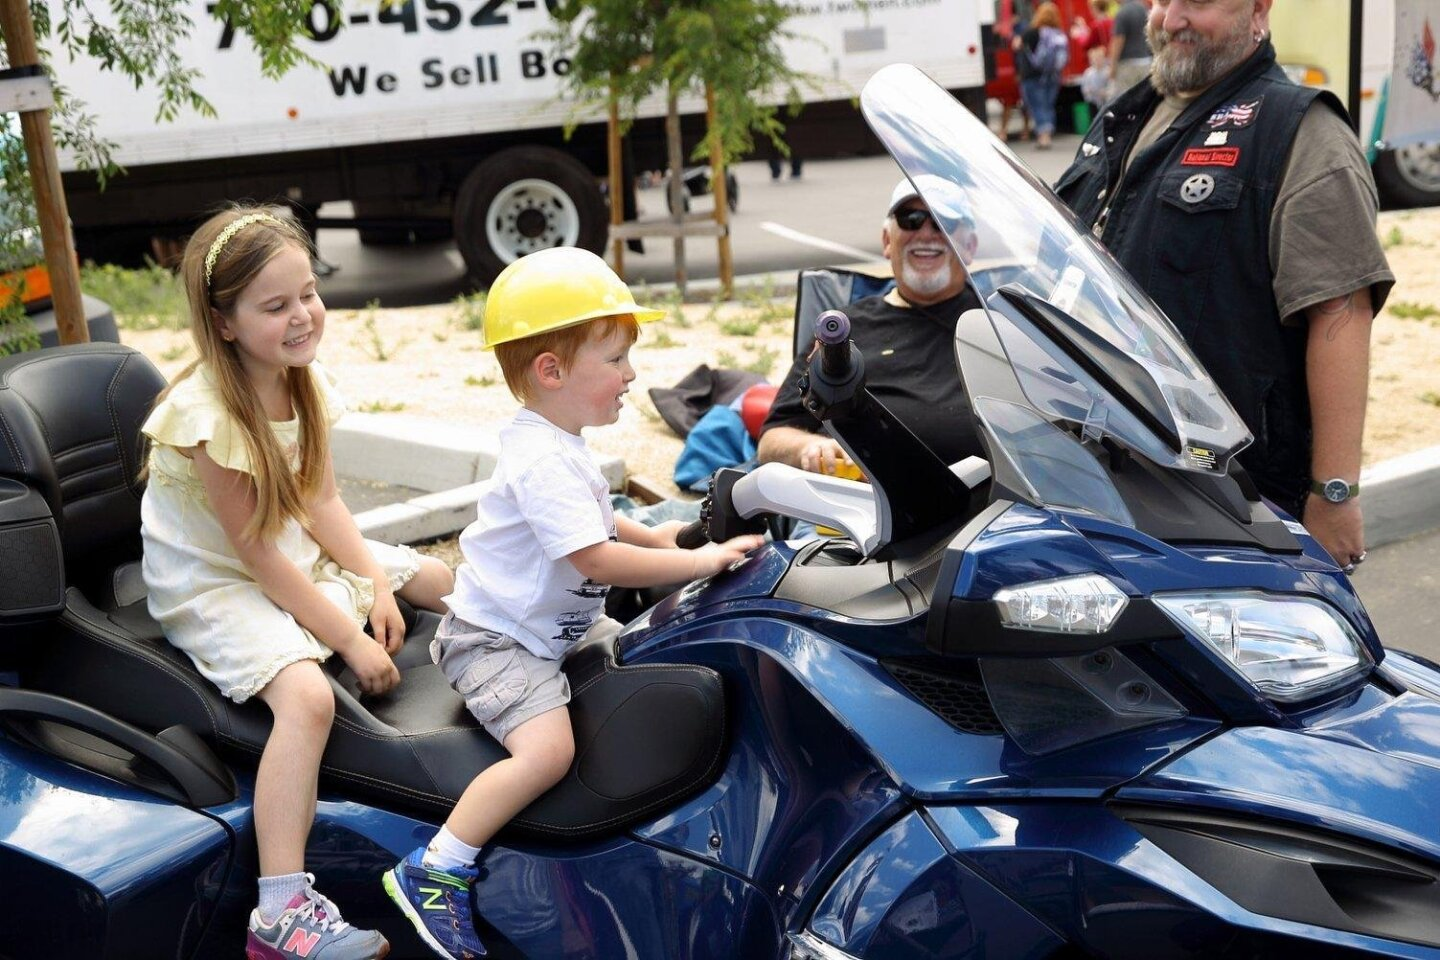 Evelyn and James Lande on a Cam-An Spyder brought in for the event from the SD Chapter of the Spyder Riders of America